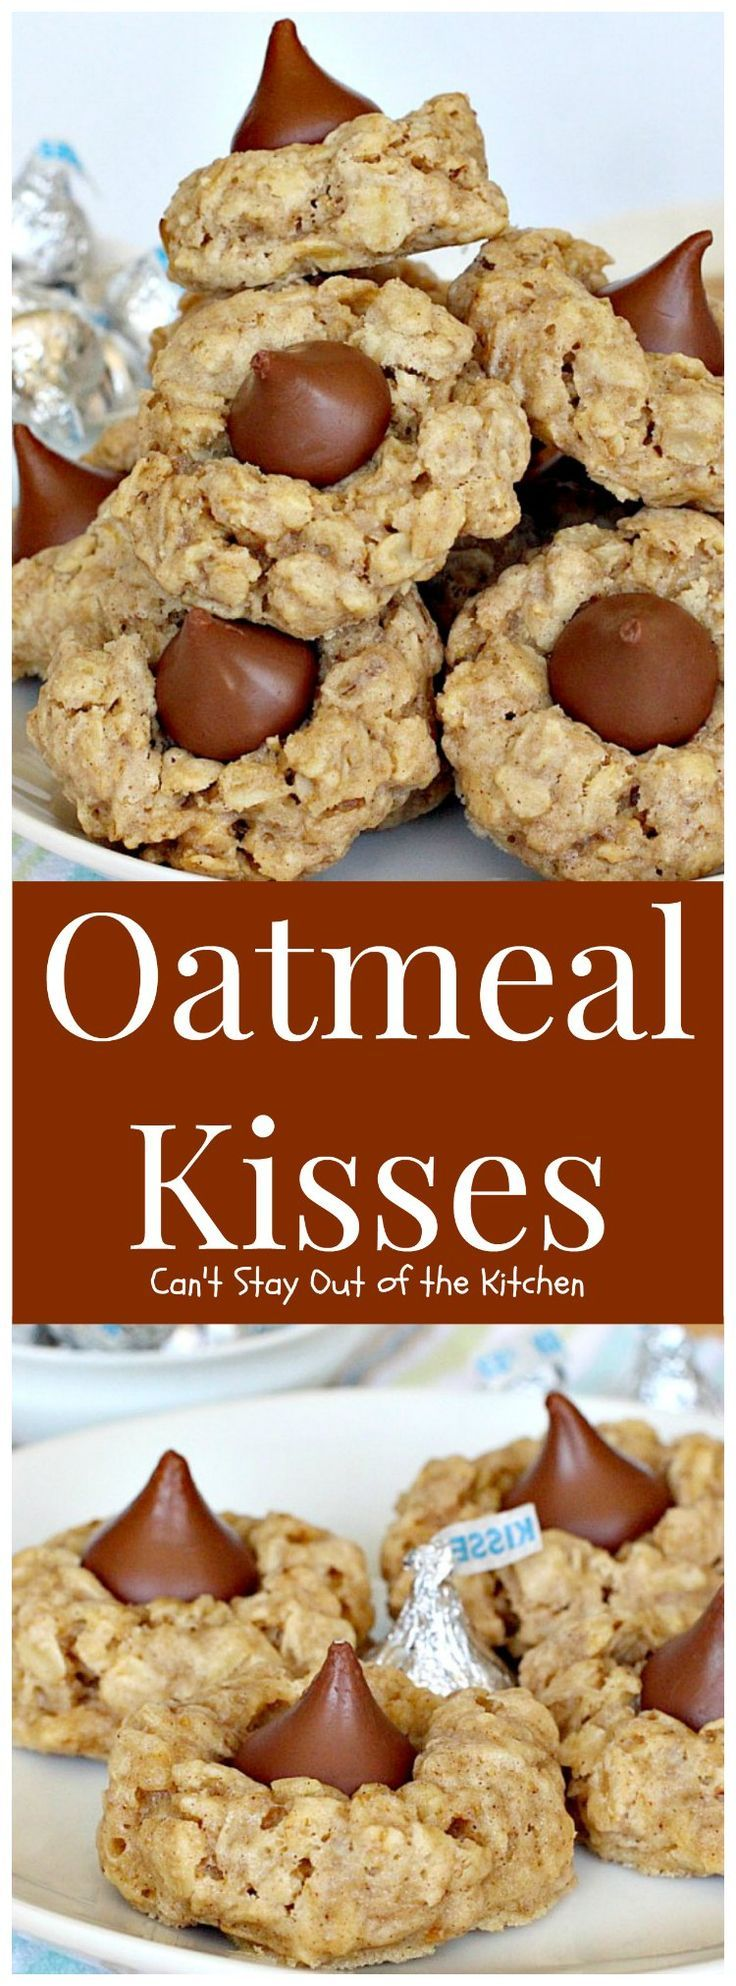 Oatmeal Kisses   Can't Stay Out of the Kitchen   These delightful #oatmeal…                                                                                                                                                                                 More